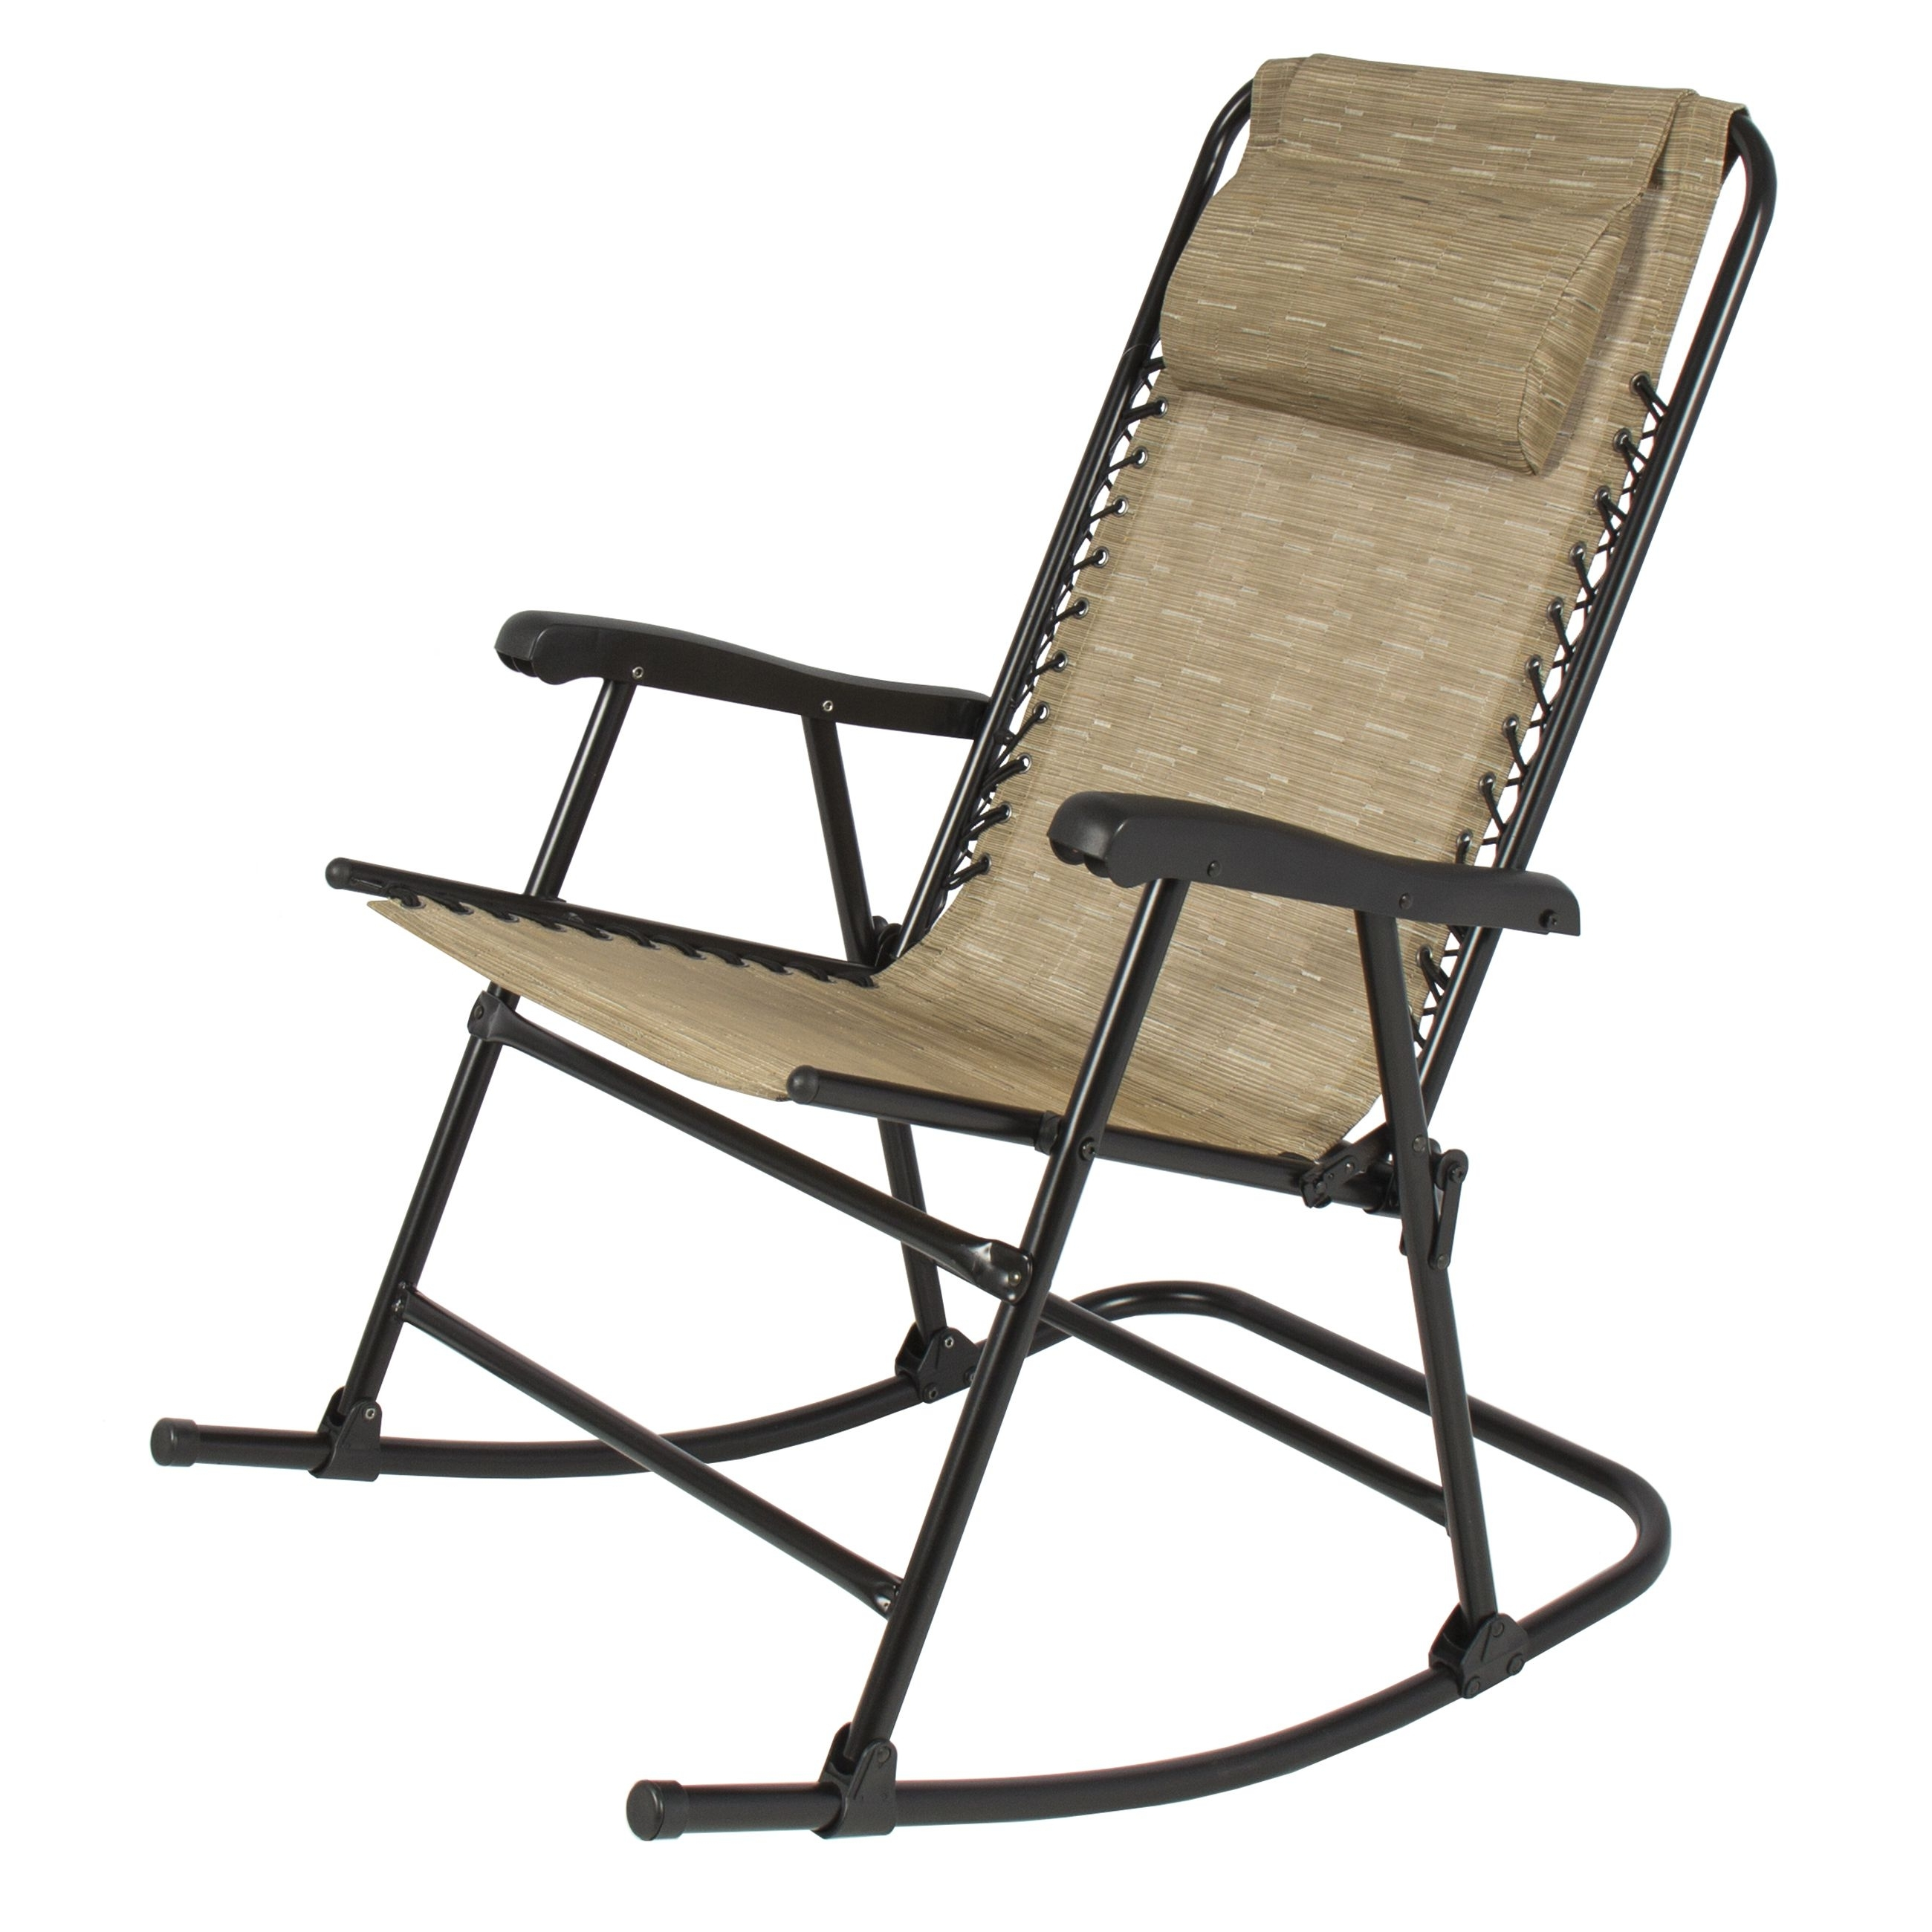 Rocking Chairs For Patio Pertaining To Most Popular Folding Rocking Chair Foldable Rocker Outdoor Patio Furniture Beige (View 4 of 20)